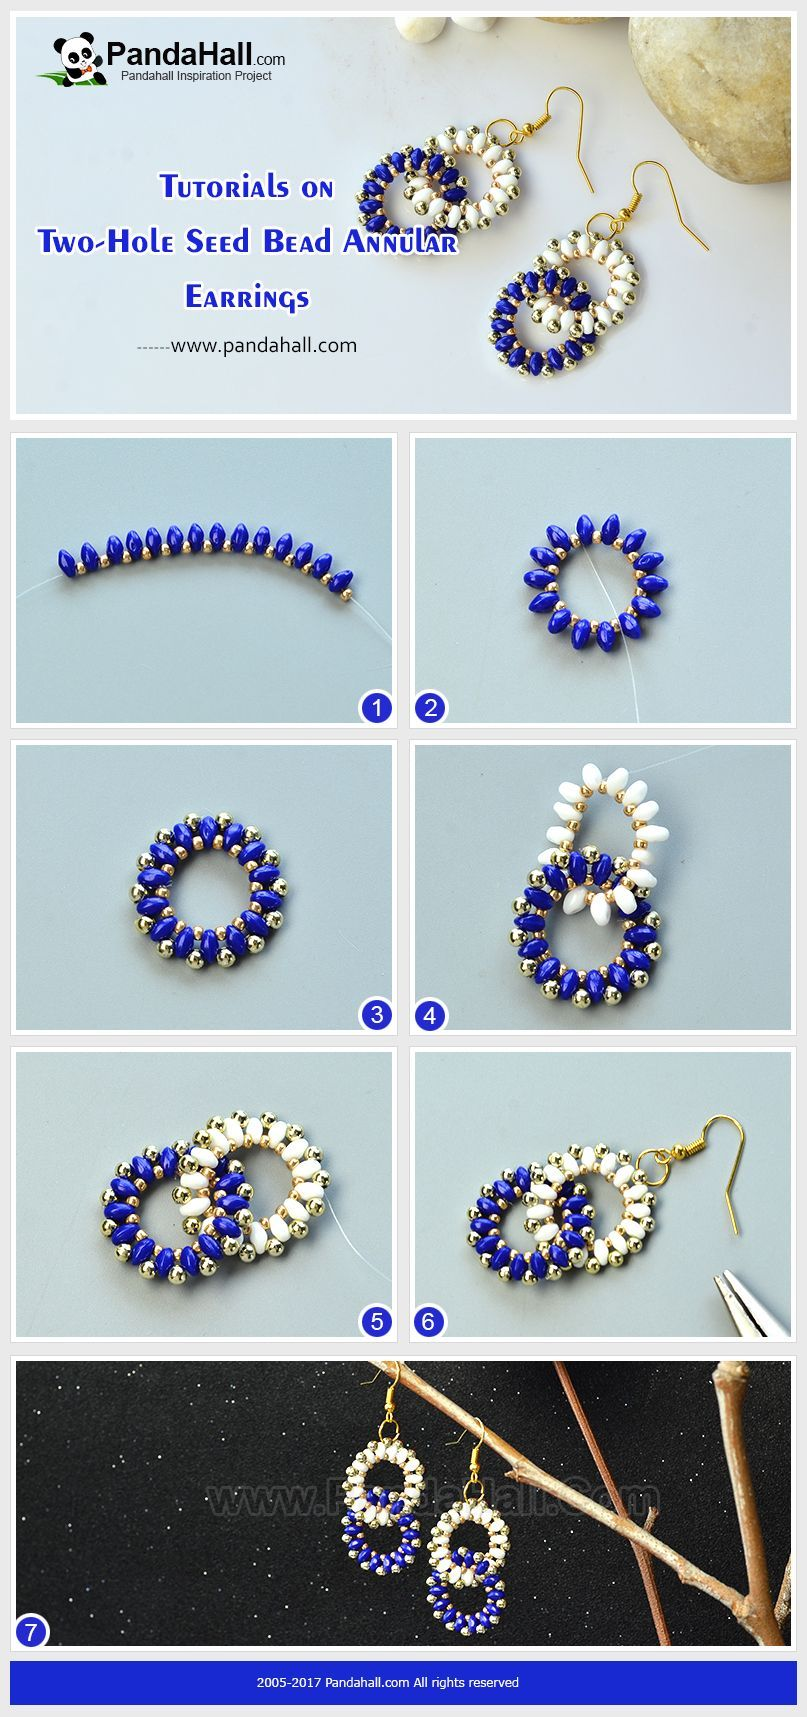 How To Make Two Hole Seed Bead Annular Earrings The Pair Of Earrings Is Made Of Seed Beads The Whole Beaded Earrings Tutorials Beaded Bracelets Beaded Jewelry